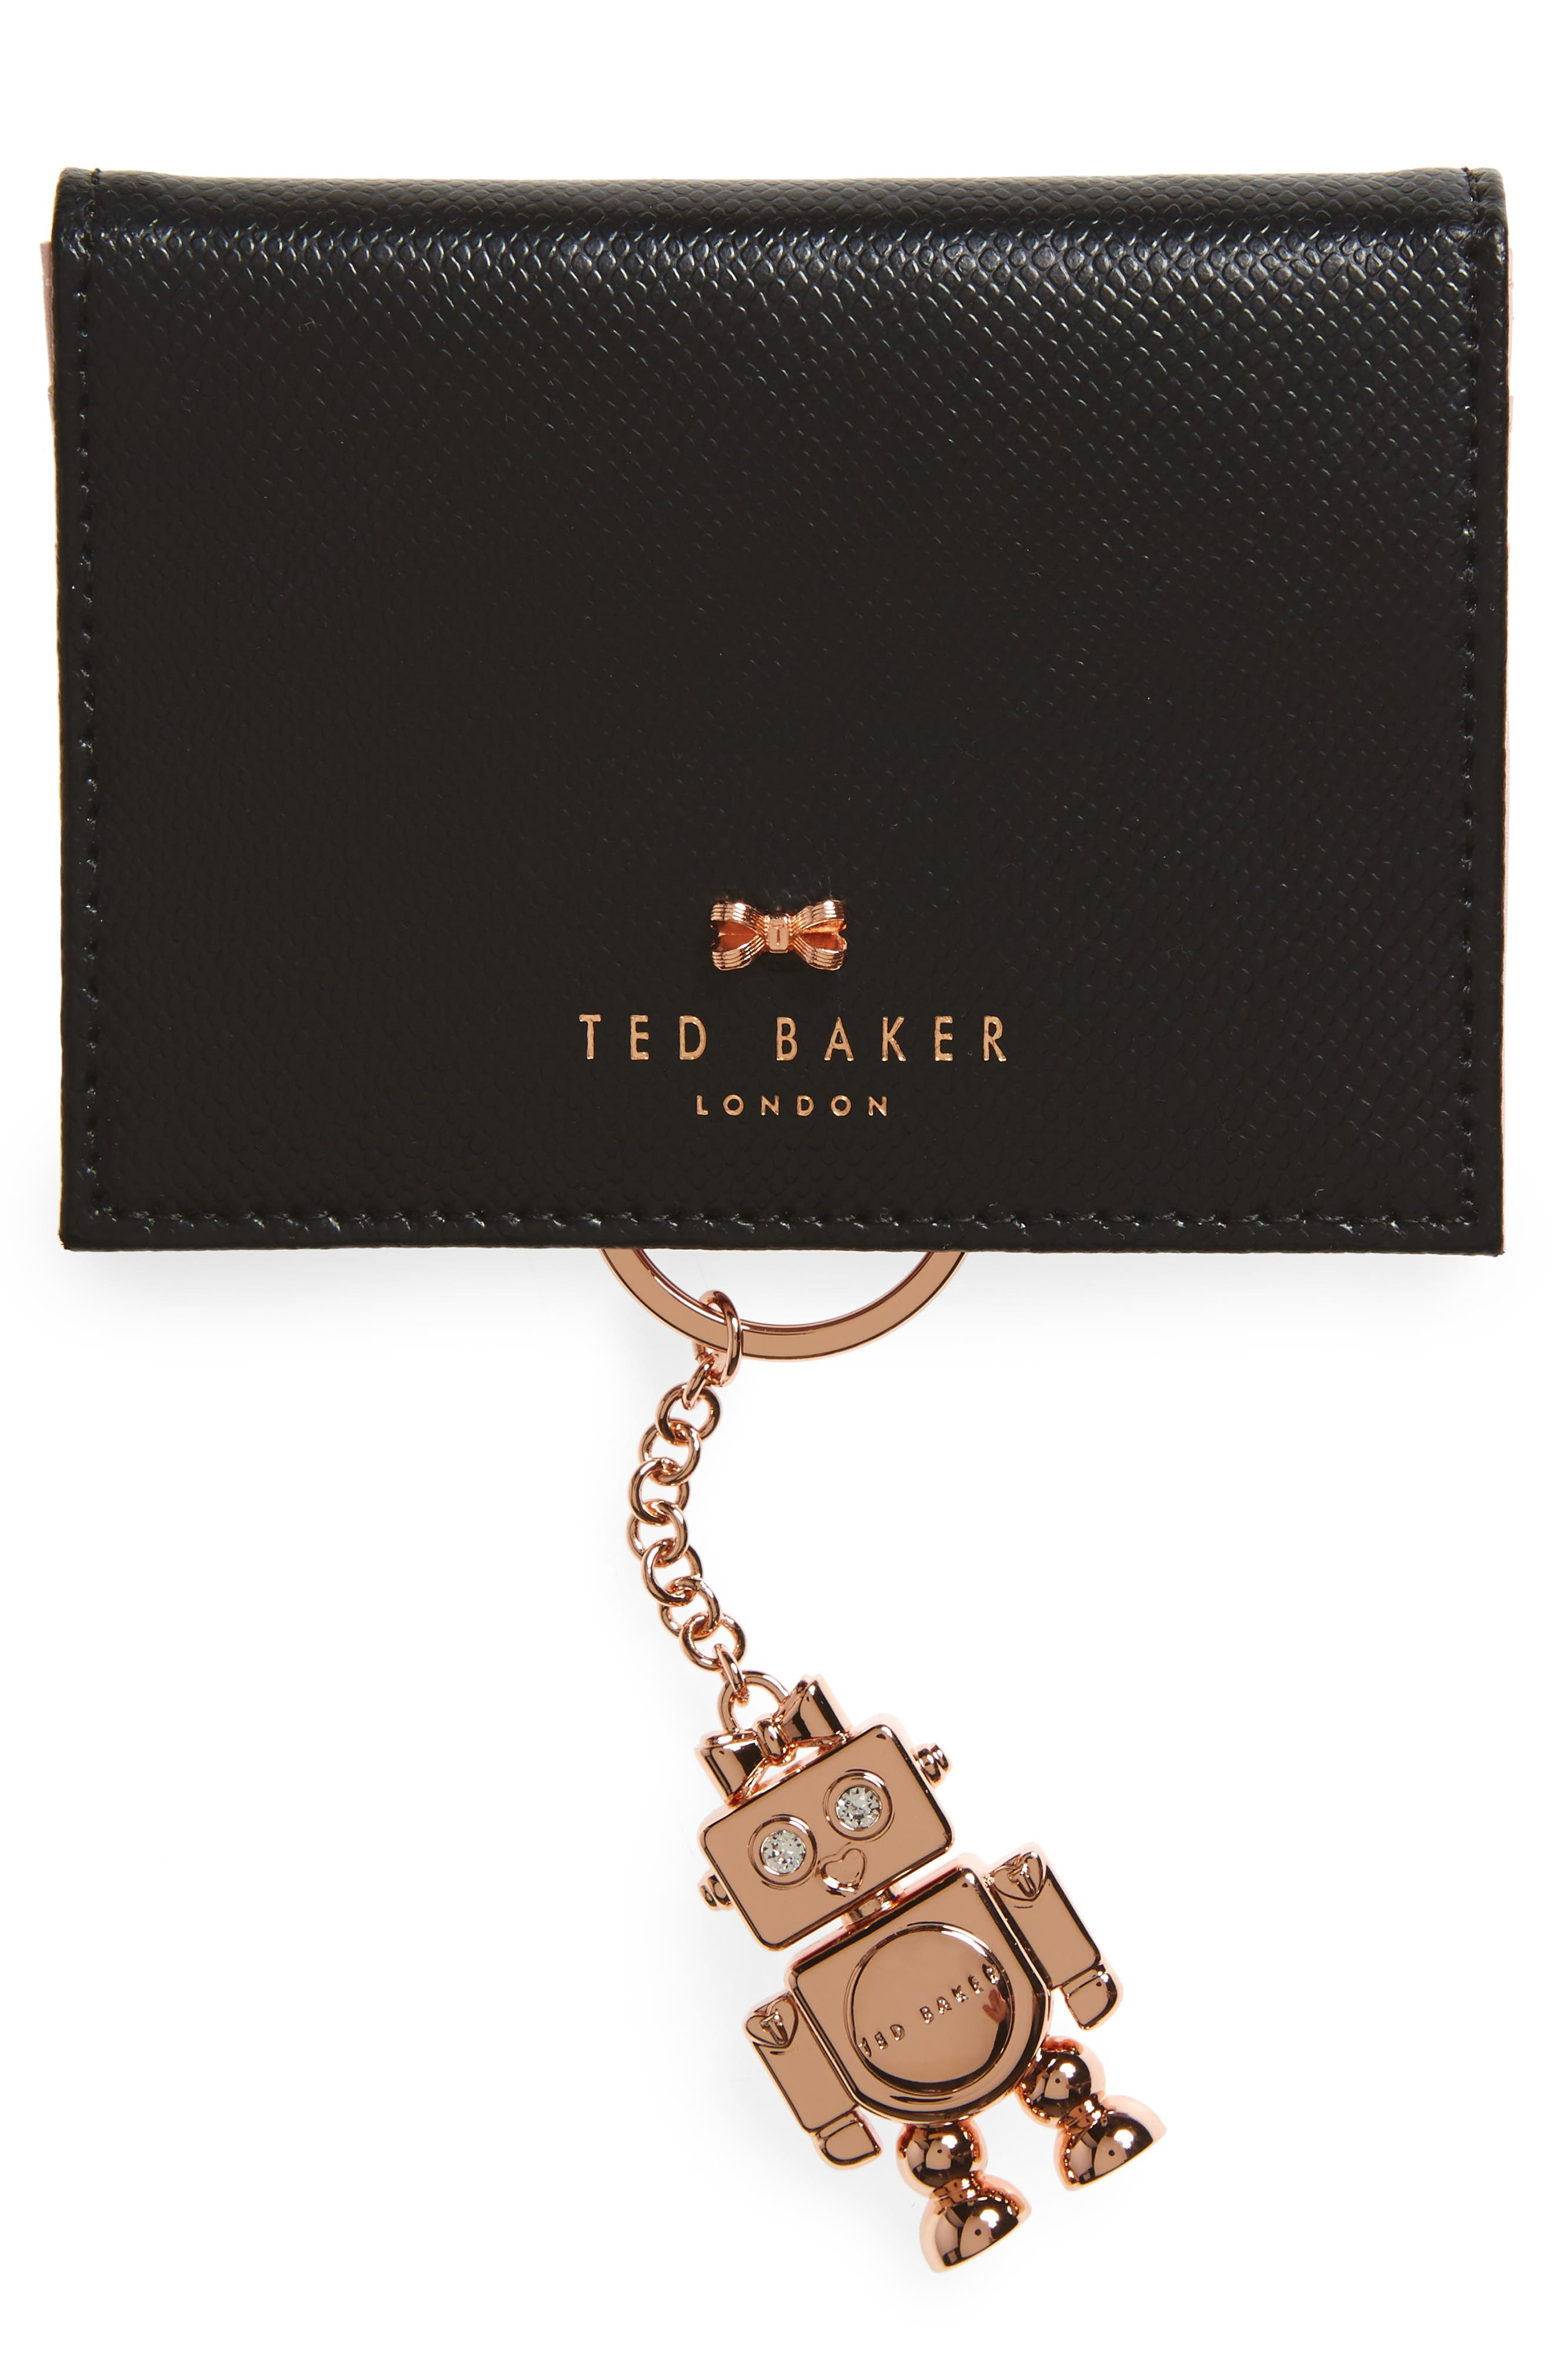 Main Image - Ted Baker London Leather Card Case with Robot Key Chain